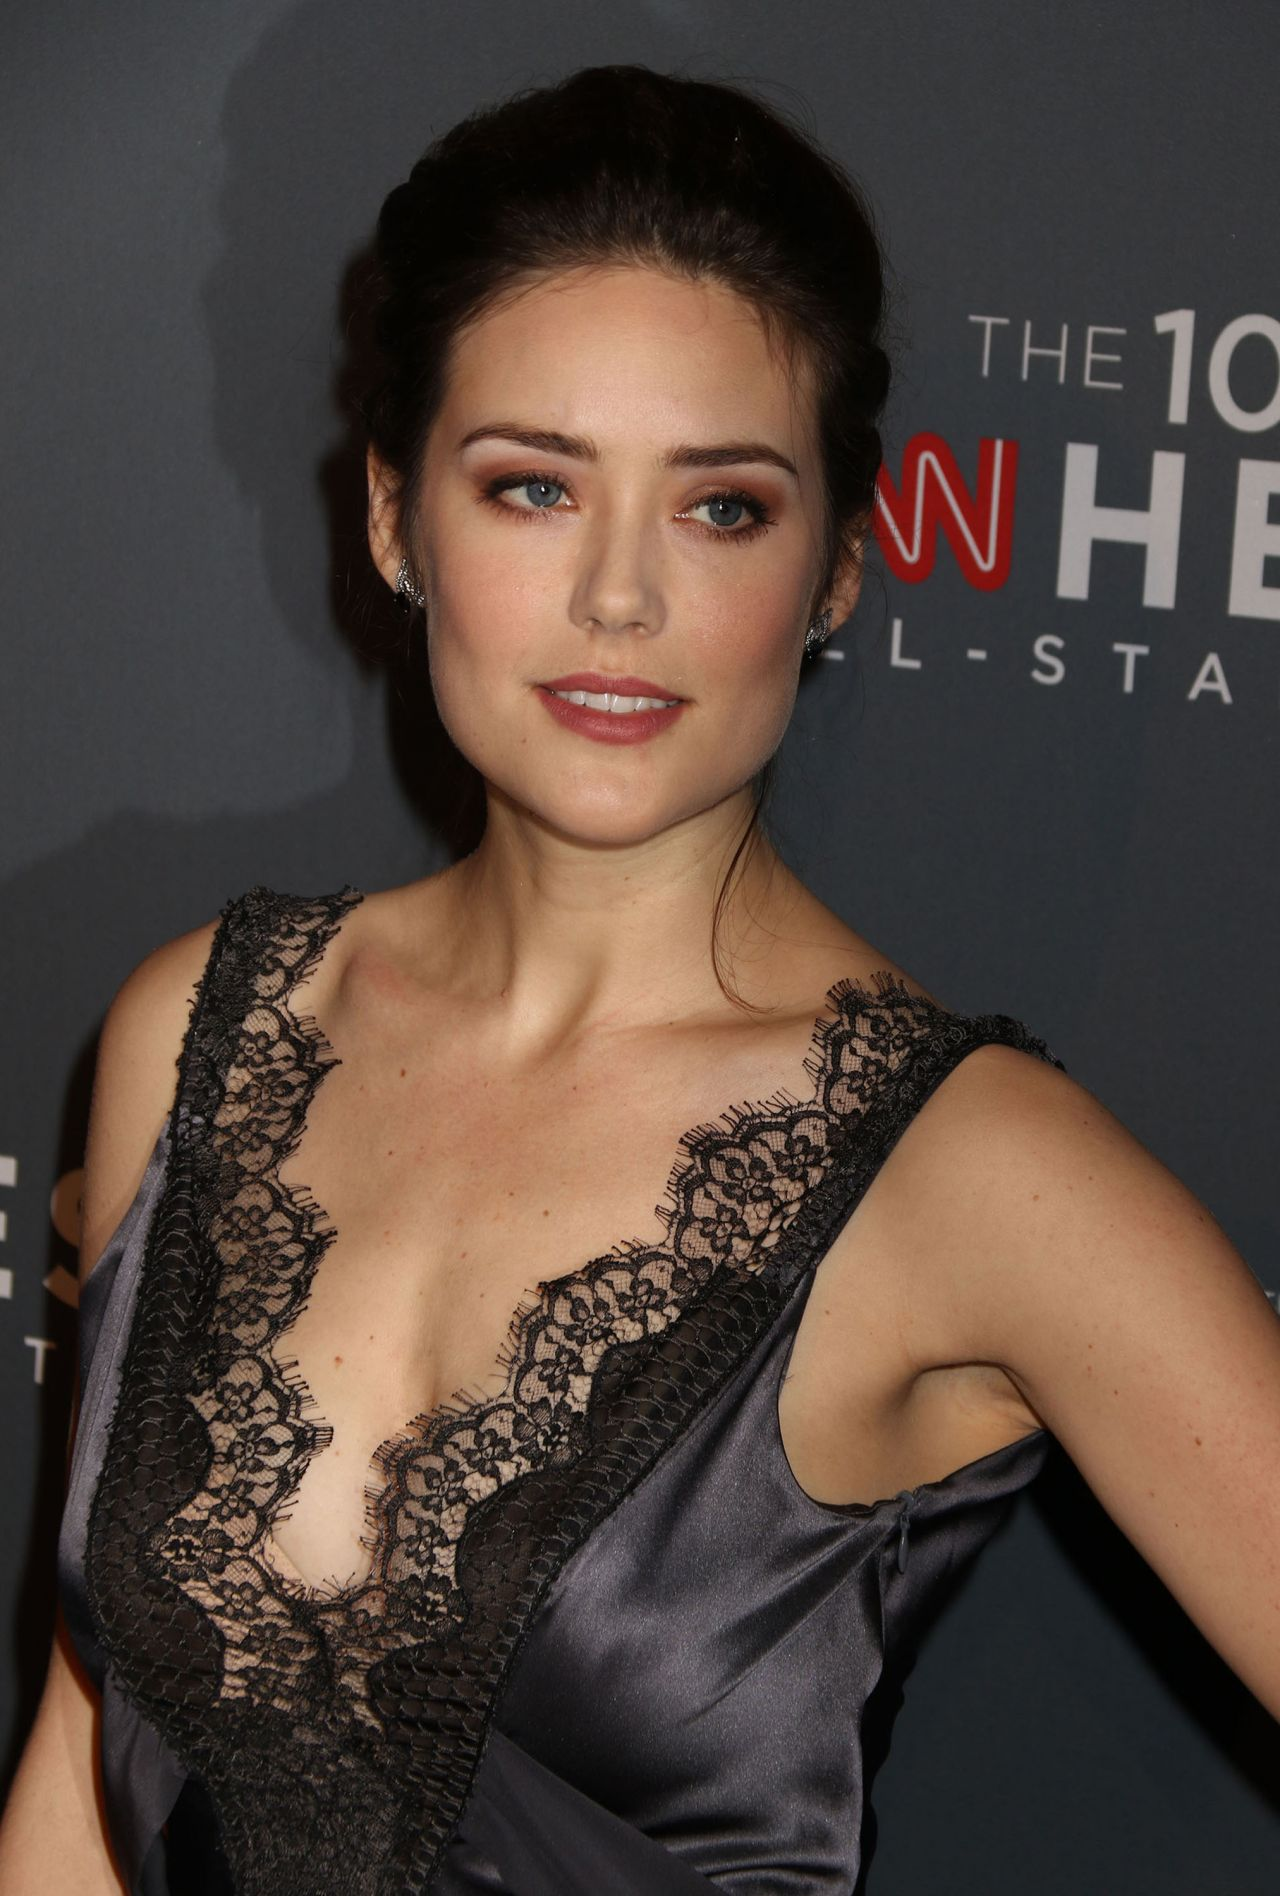 Fotos Megan Boone nude (36 foto and video), Sexy, Leaked, Boobs, braless 2017